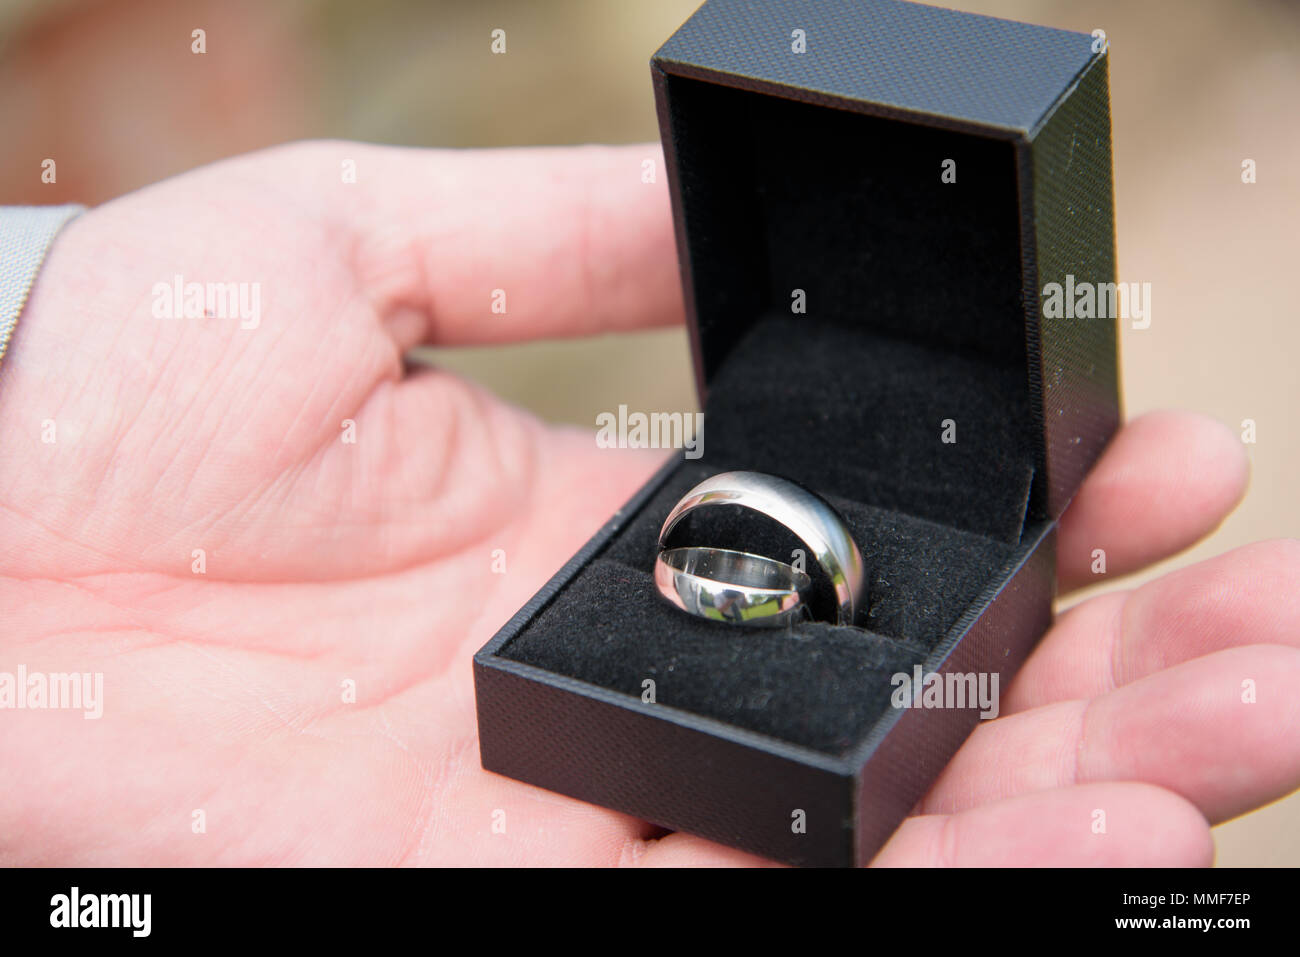 Hand Holding Box Of Wedding Rings Stock Photos & Hand Holding Box Of ...